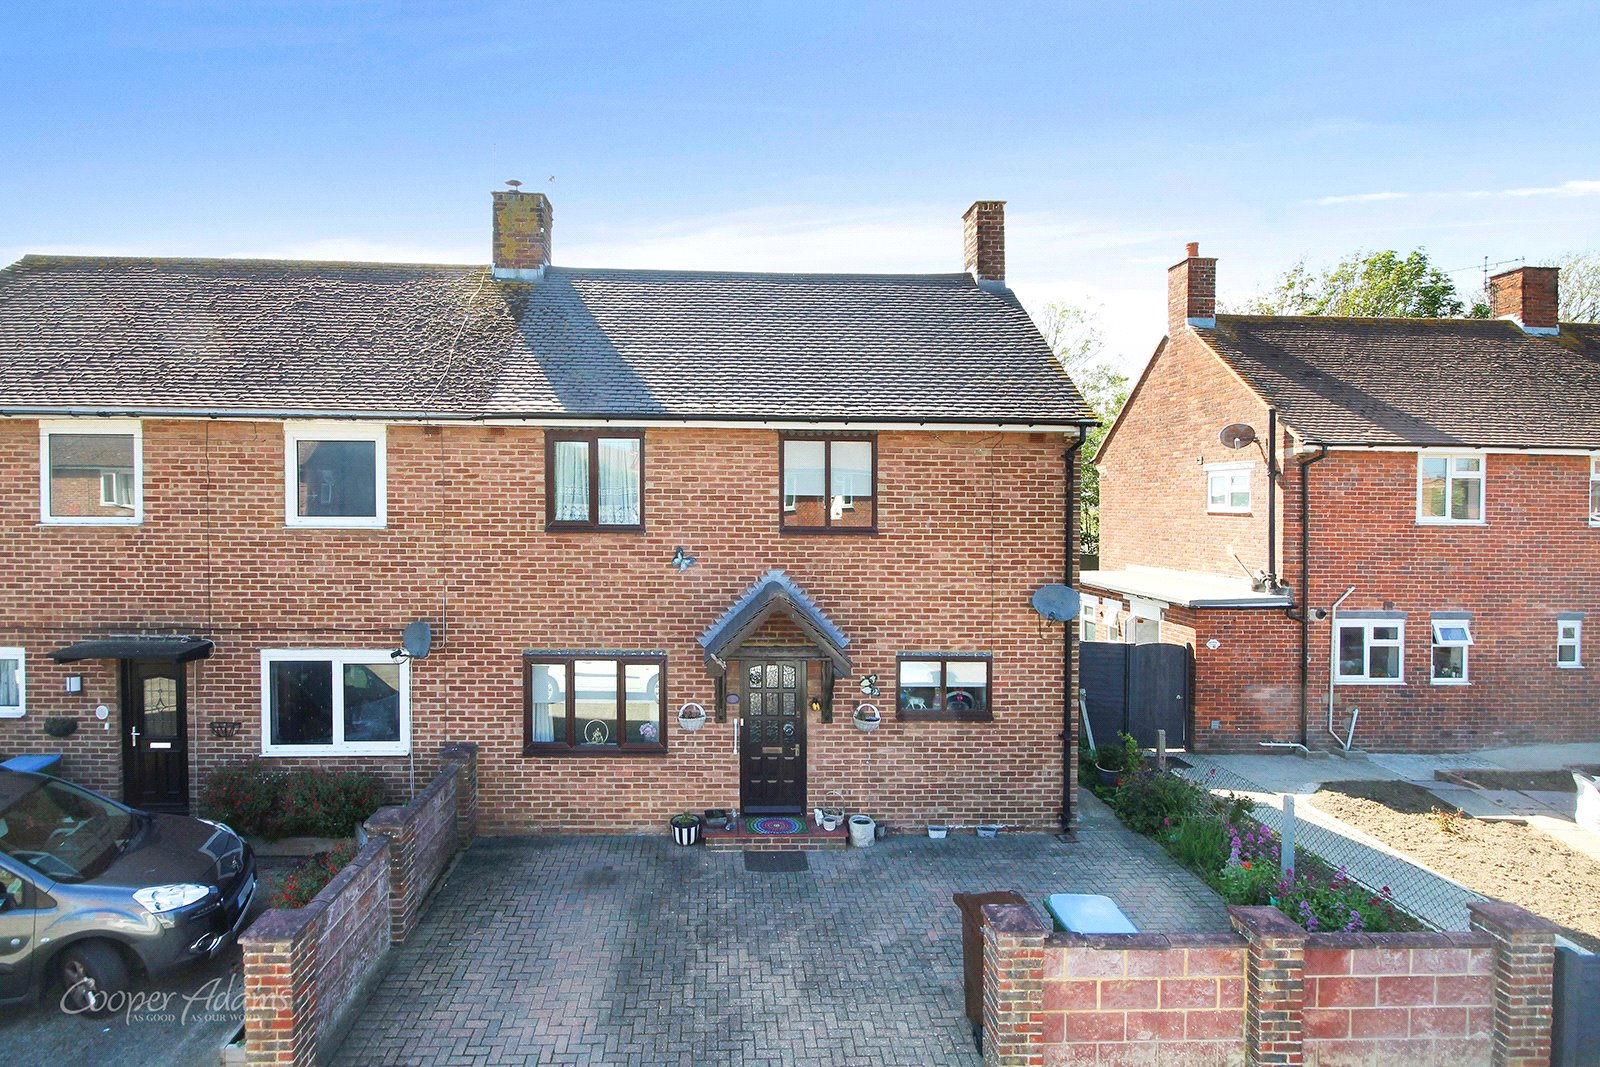 4 bed house for sale in Thorncroft Road, Littlehampton, BN17